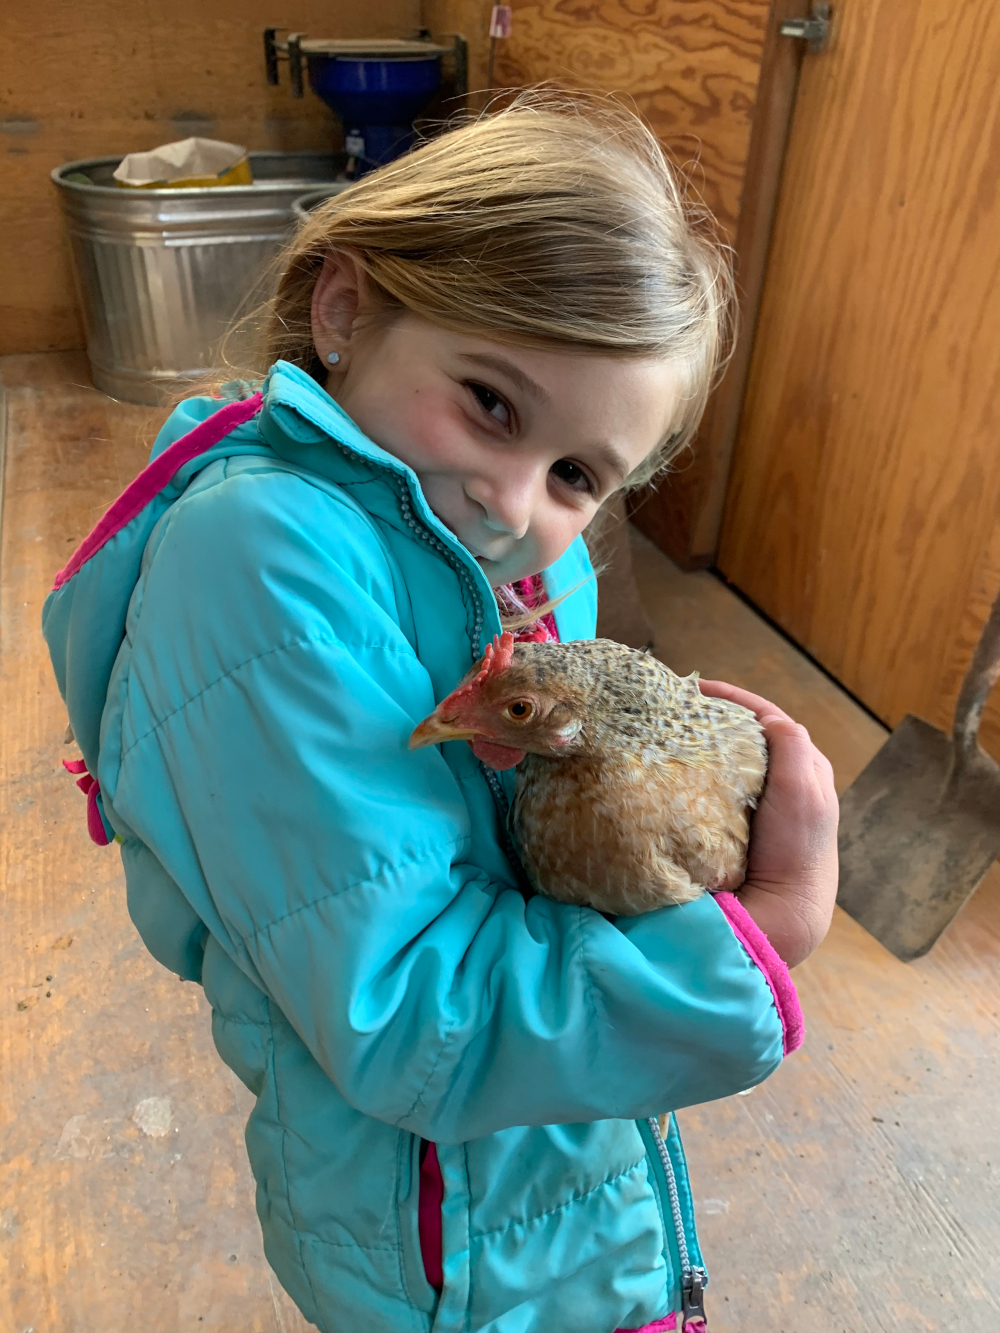 2nd. Trudy Bruhn_helping take care of baby chicks and hens 2